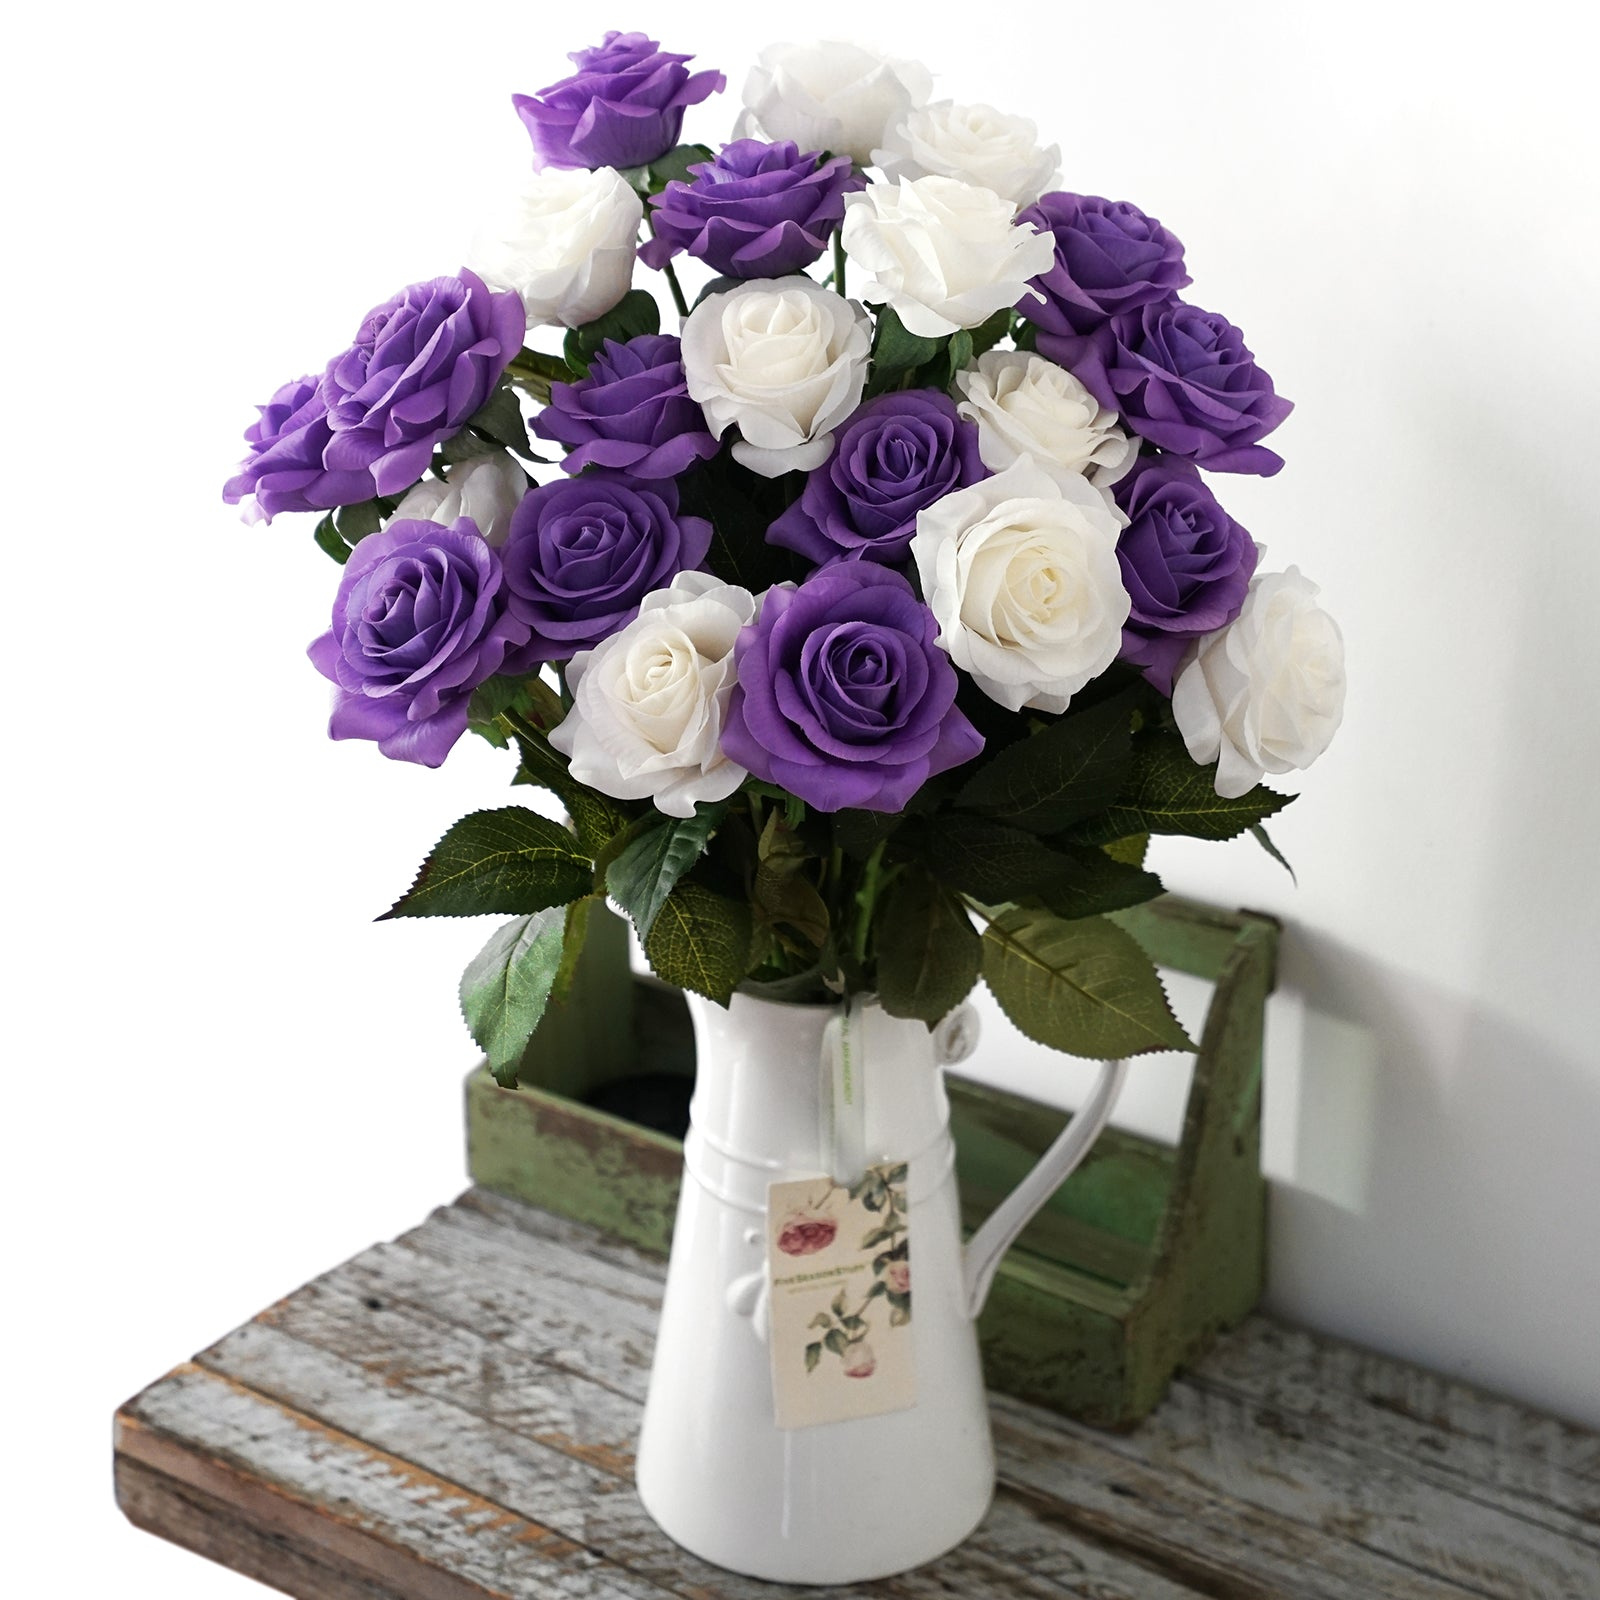 Real Touch 10 Stems Violet Silk Artificial Roses Flowers 'Petals Feel and Look like Fresh Roses'